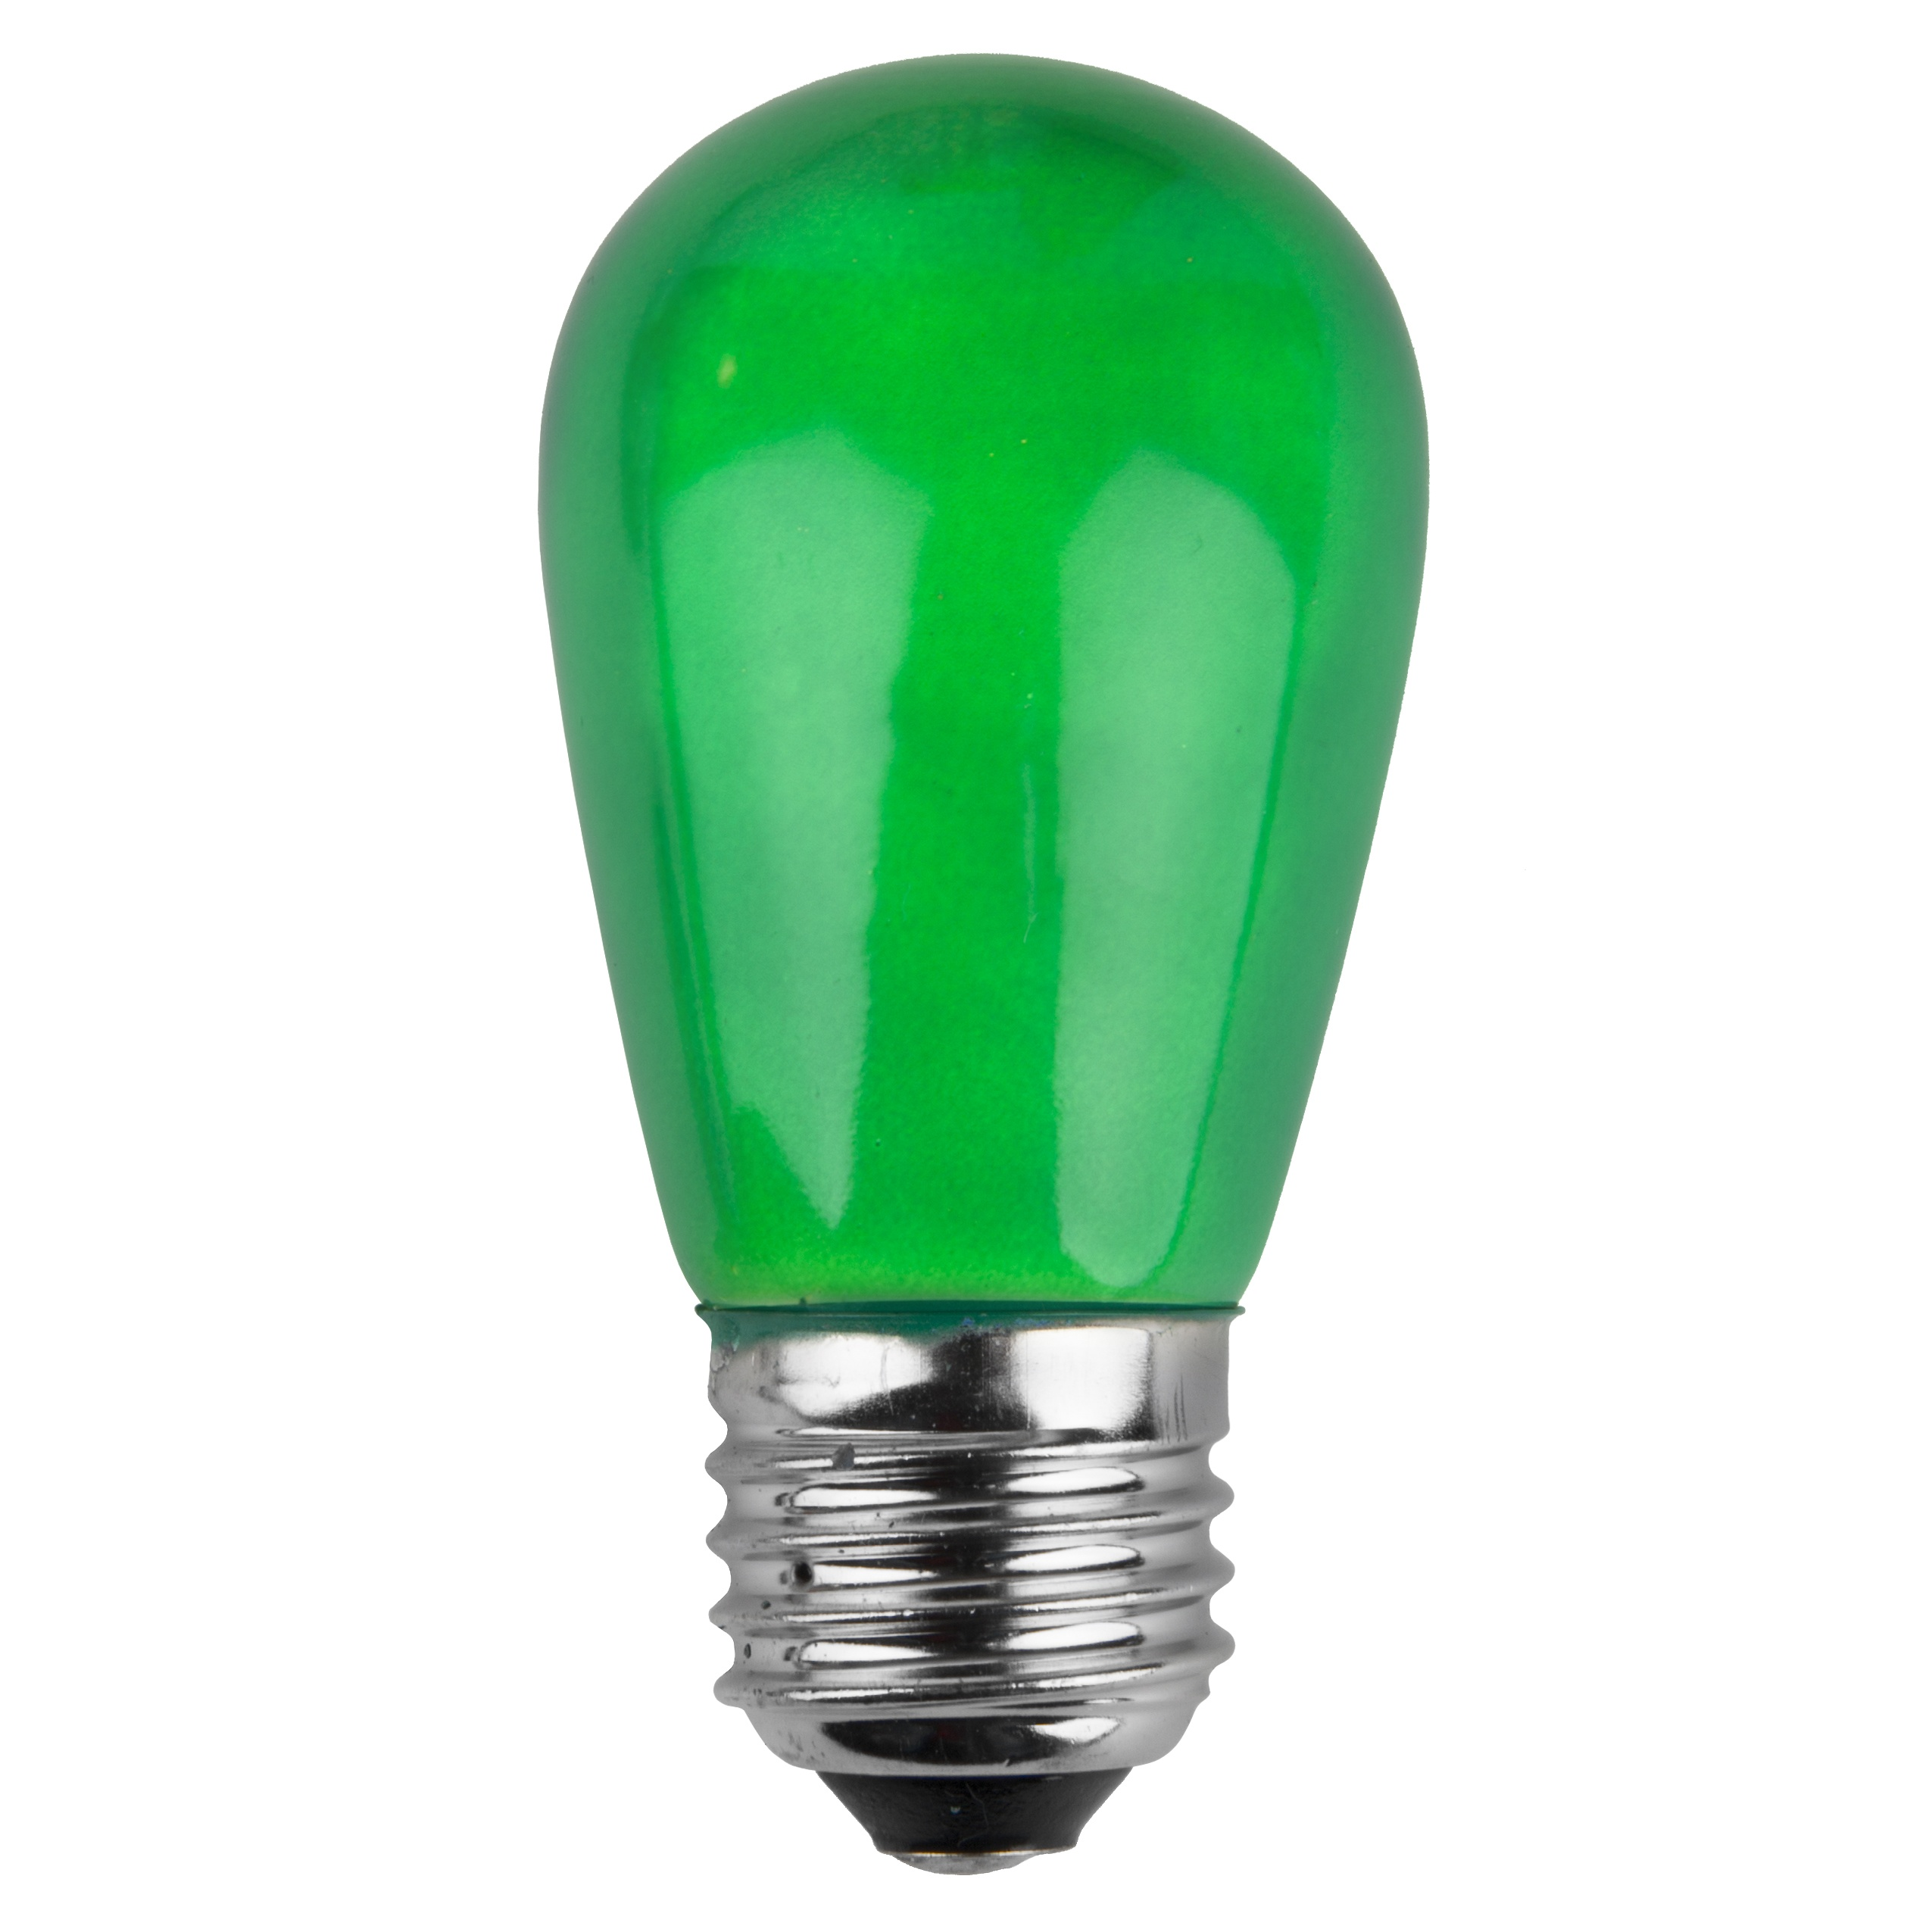 11S14 Opaque Green Incandescent Sign Lamp